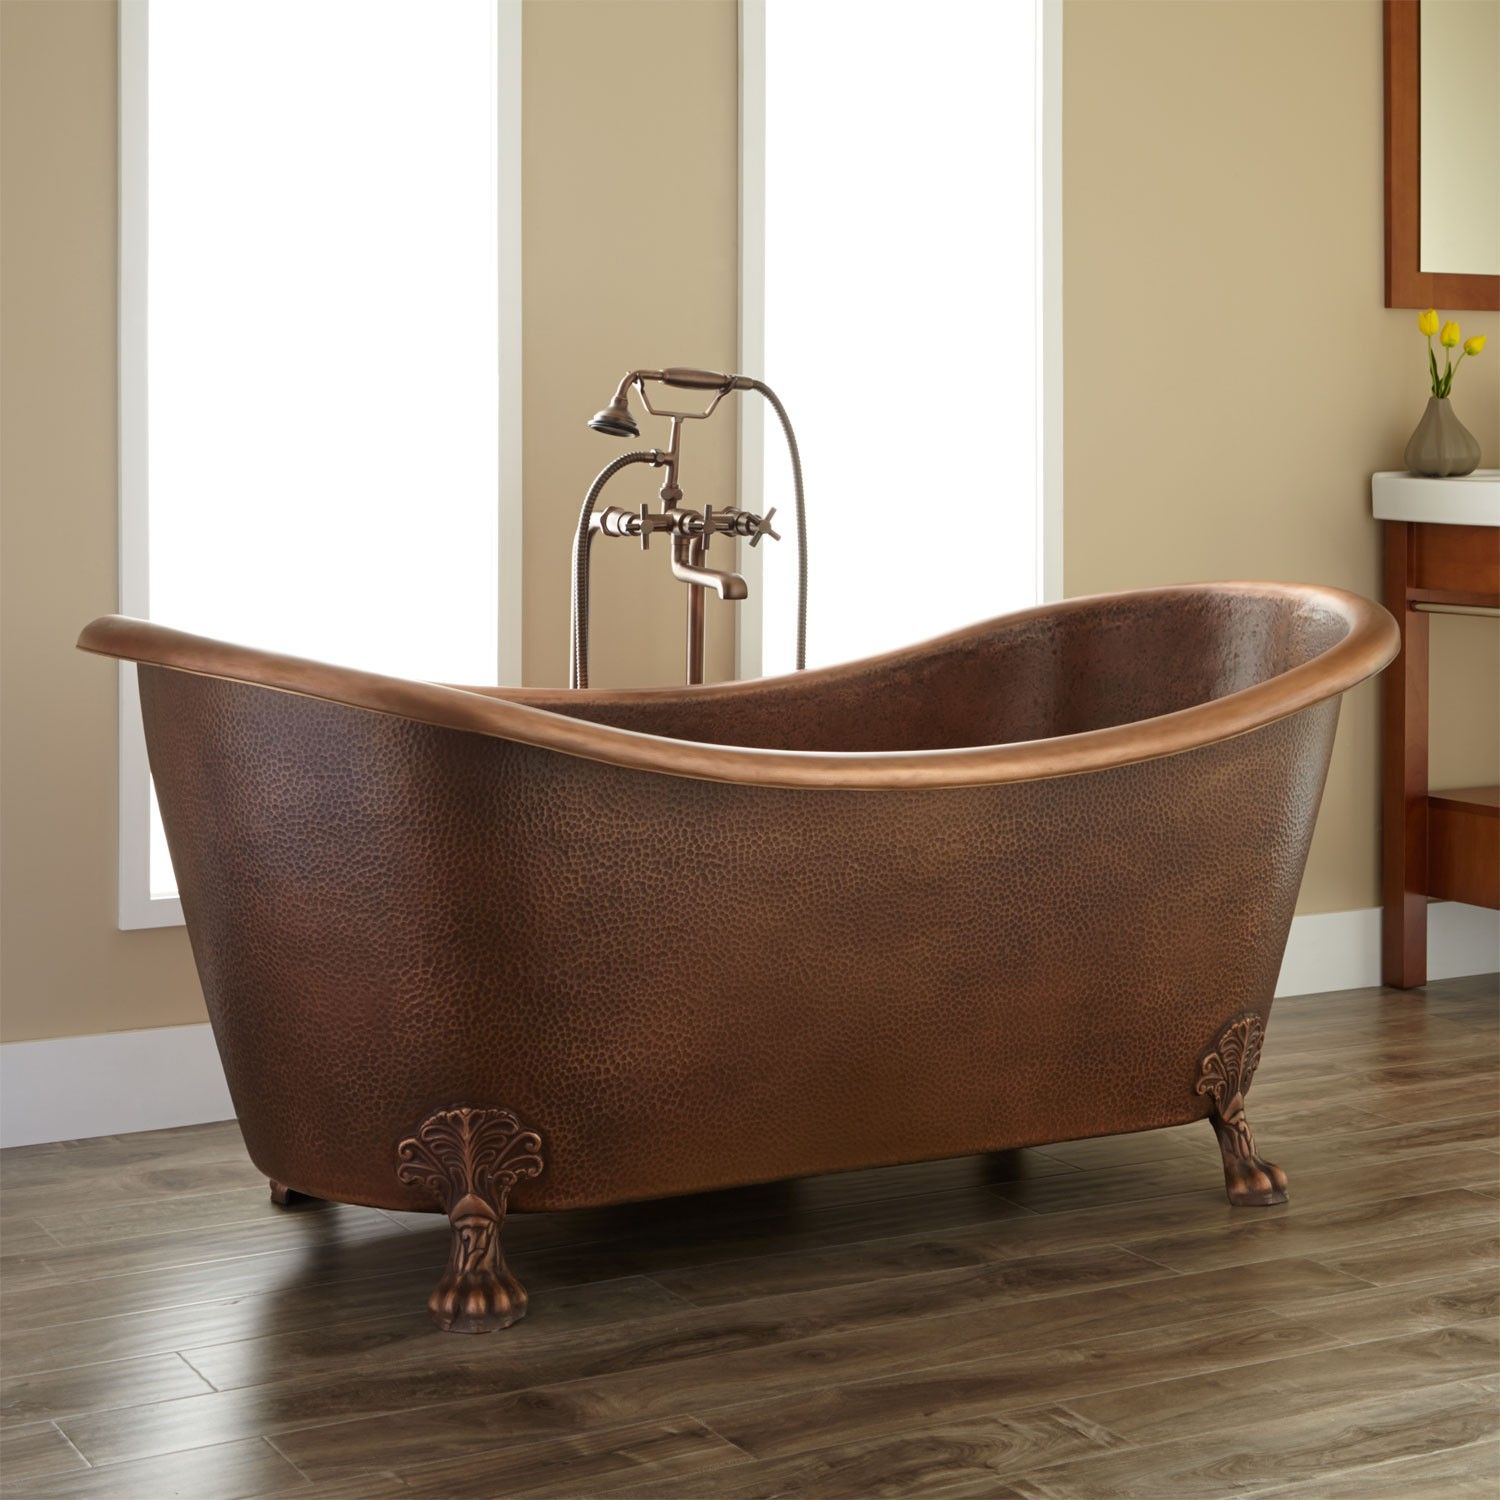 Claw foot tubs bathtubs isabella hammered copper for Claw foot bath tub for sale